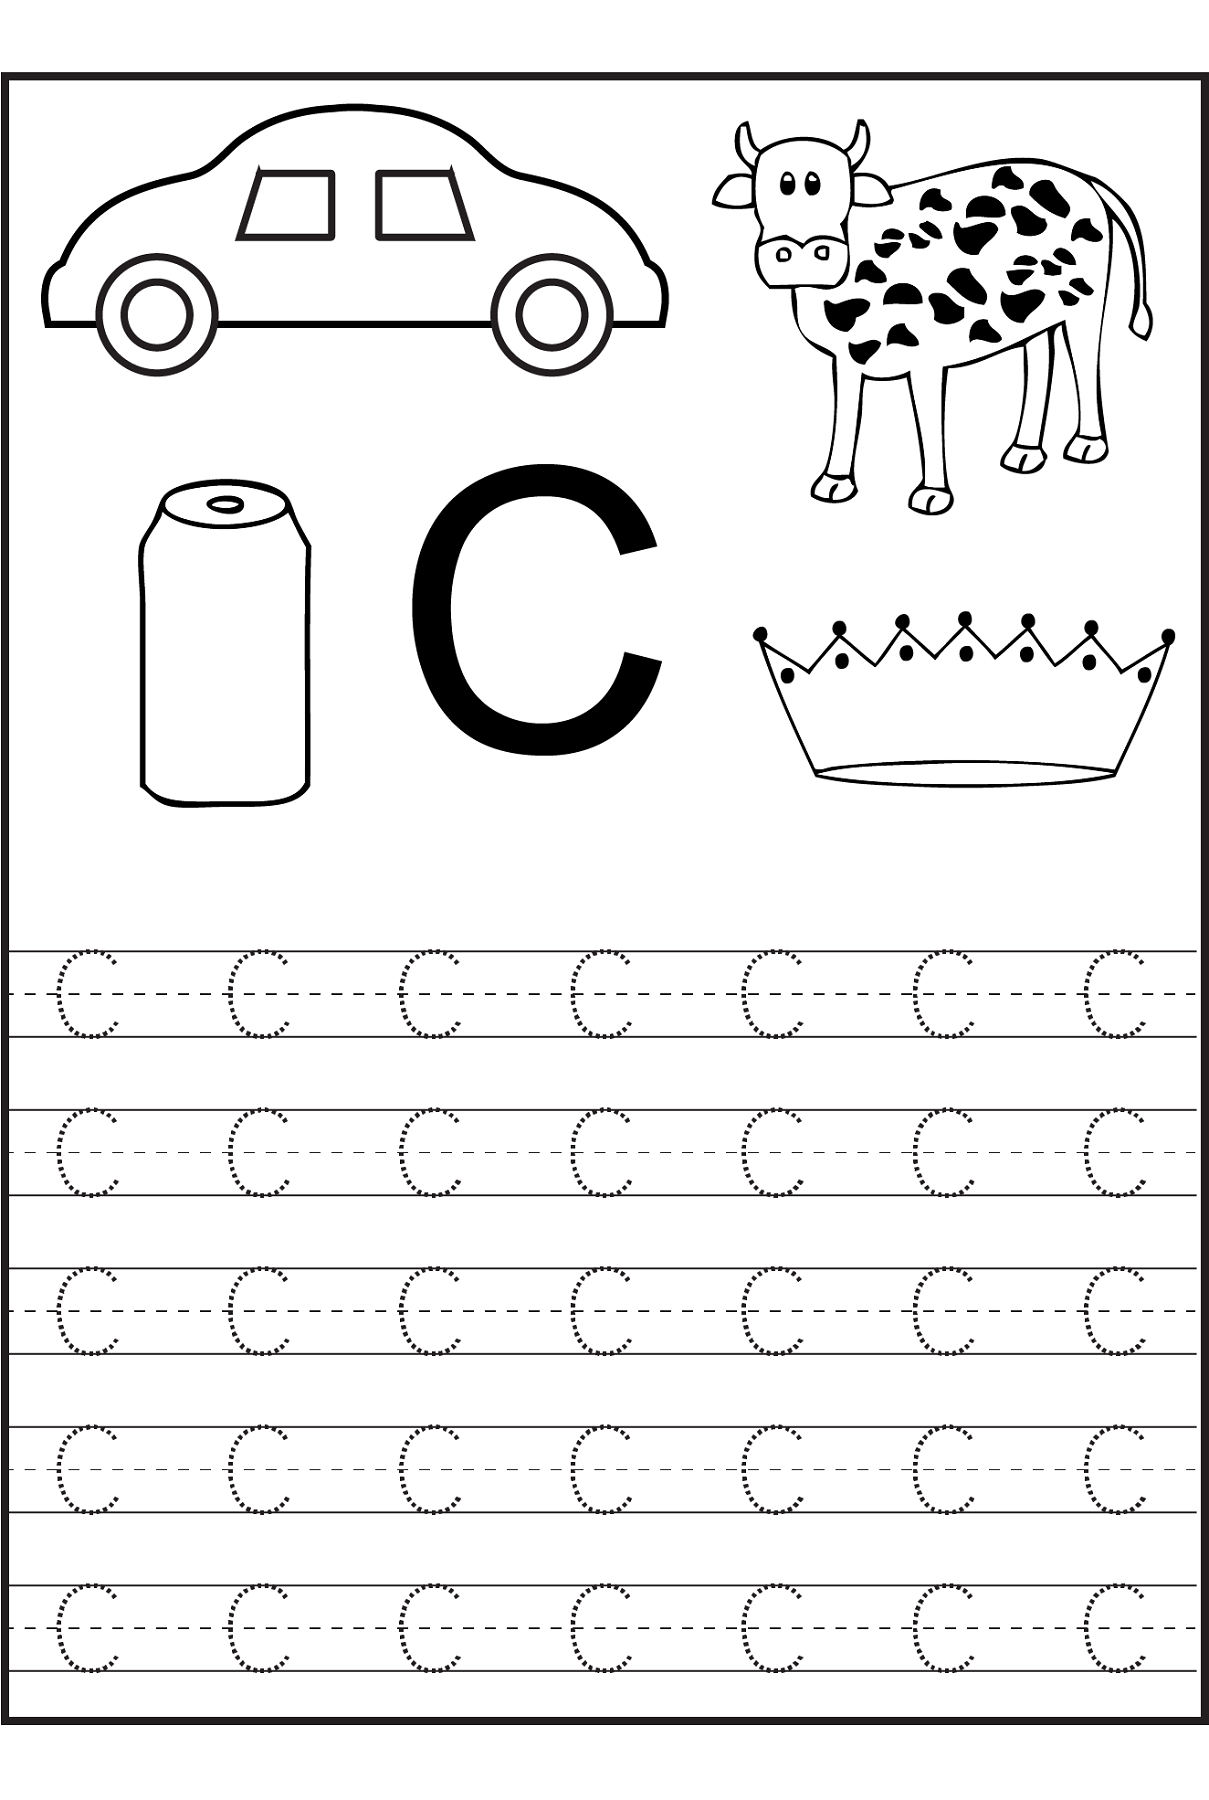 Trace The Letter C Worksheets | Learning Worksheets, Free pertaining to Letter C Worksheets Free Printable